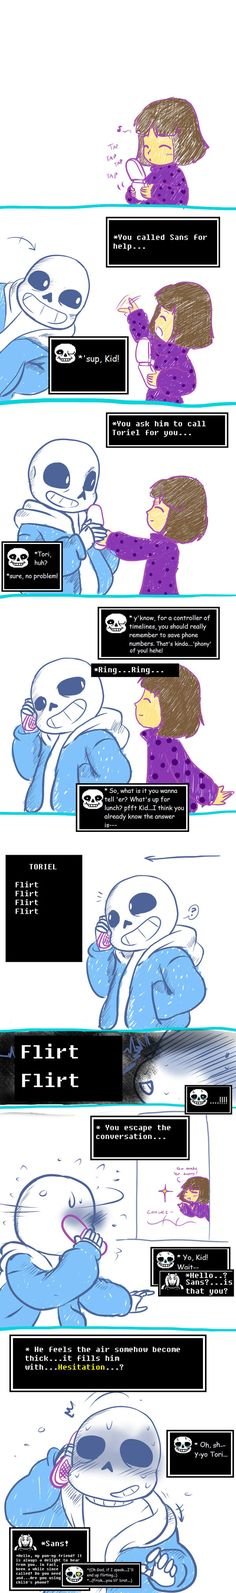 Undertale Little moments: Phony Call by perfectshadow06